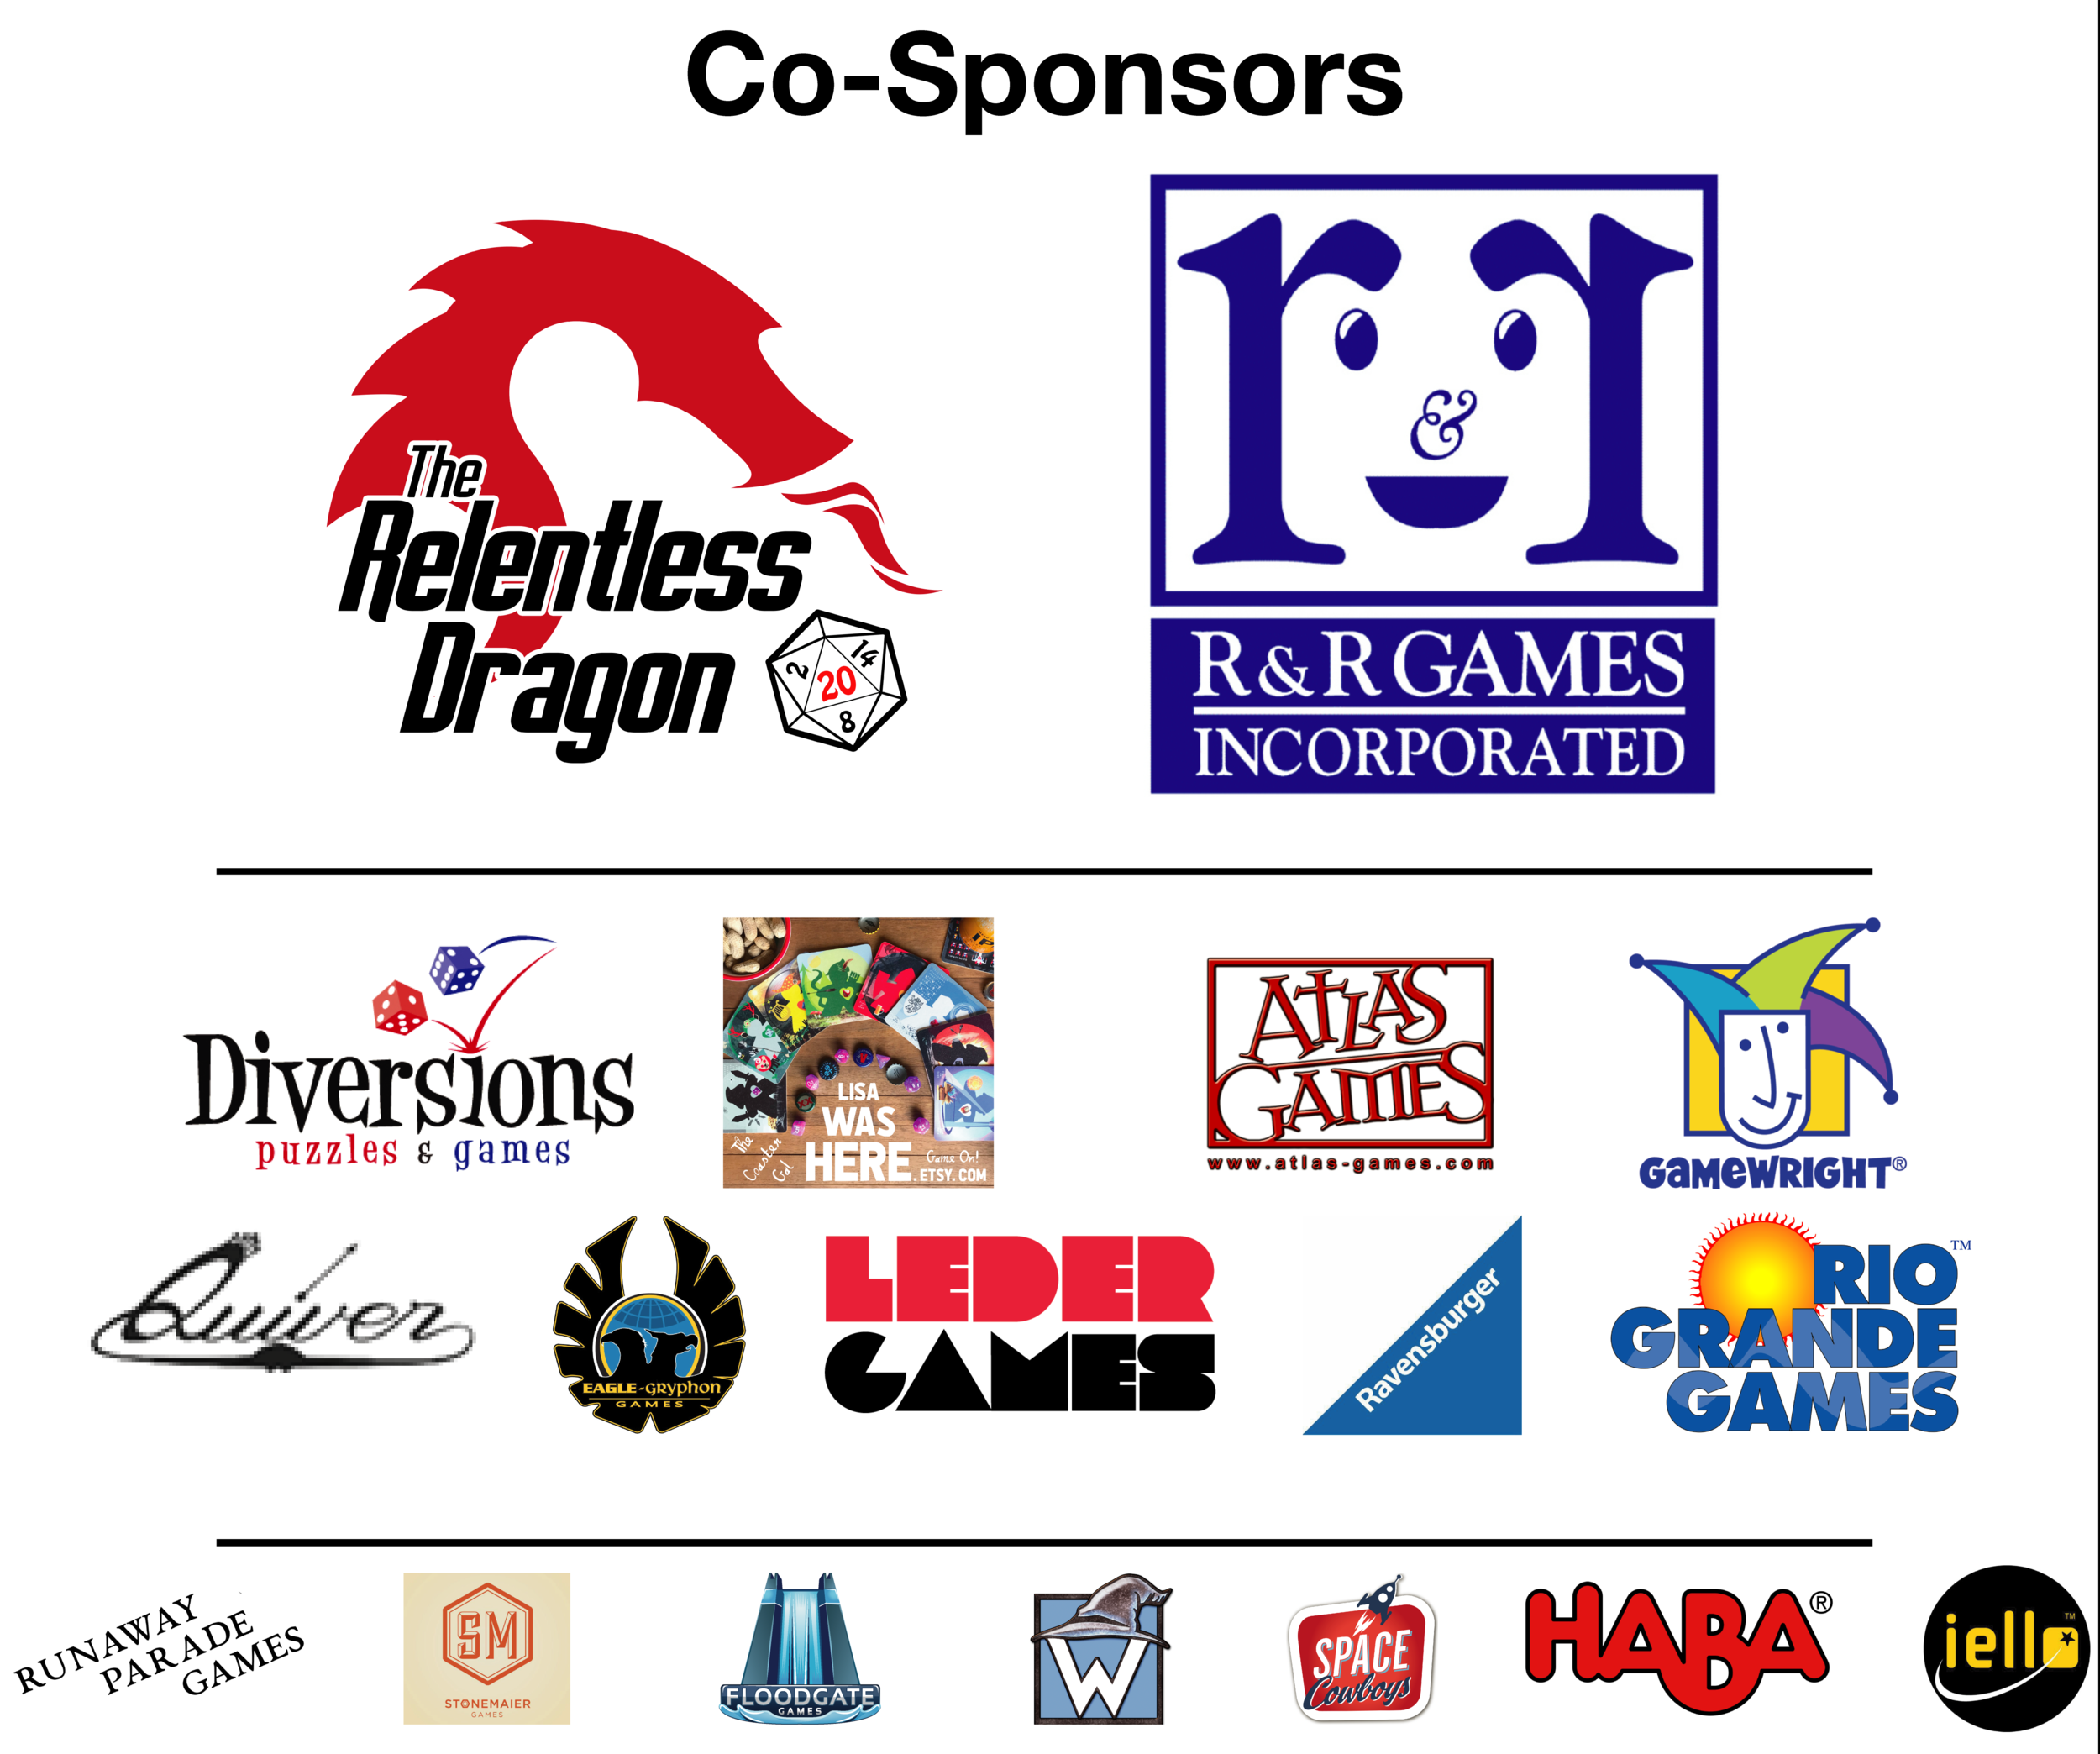 G2S19Sponsors.png